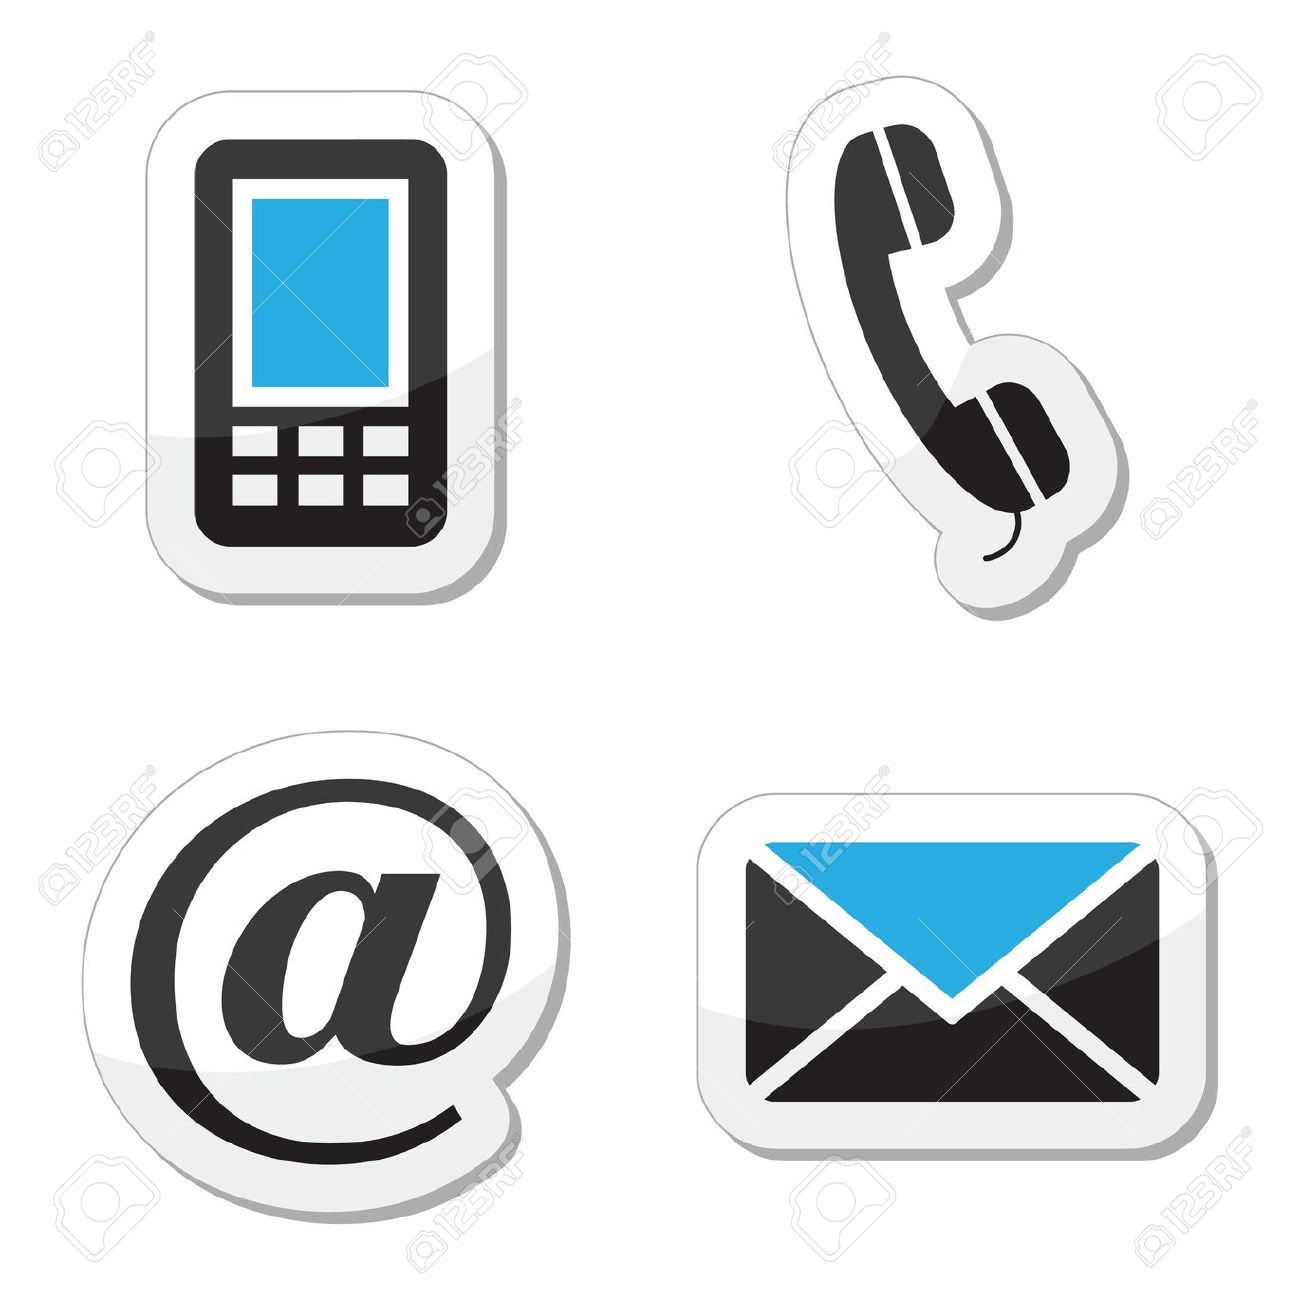 Phone Email Clipart.